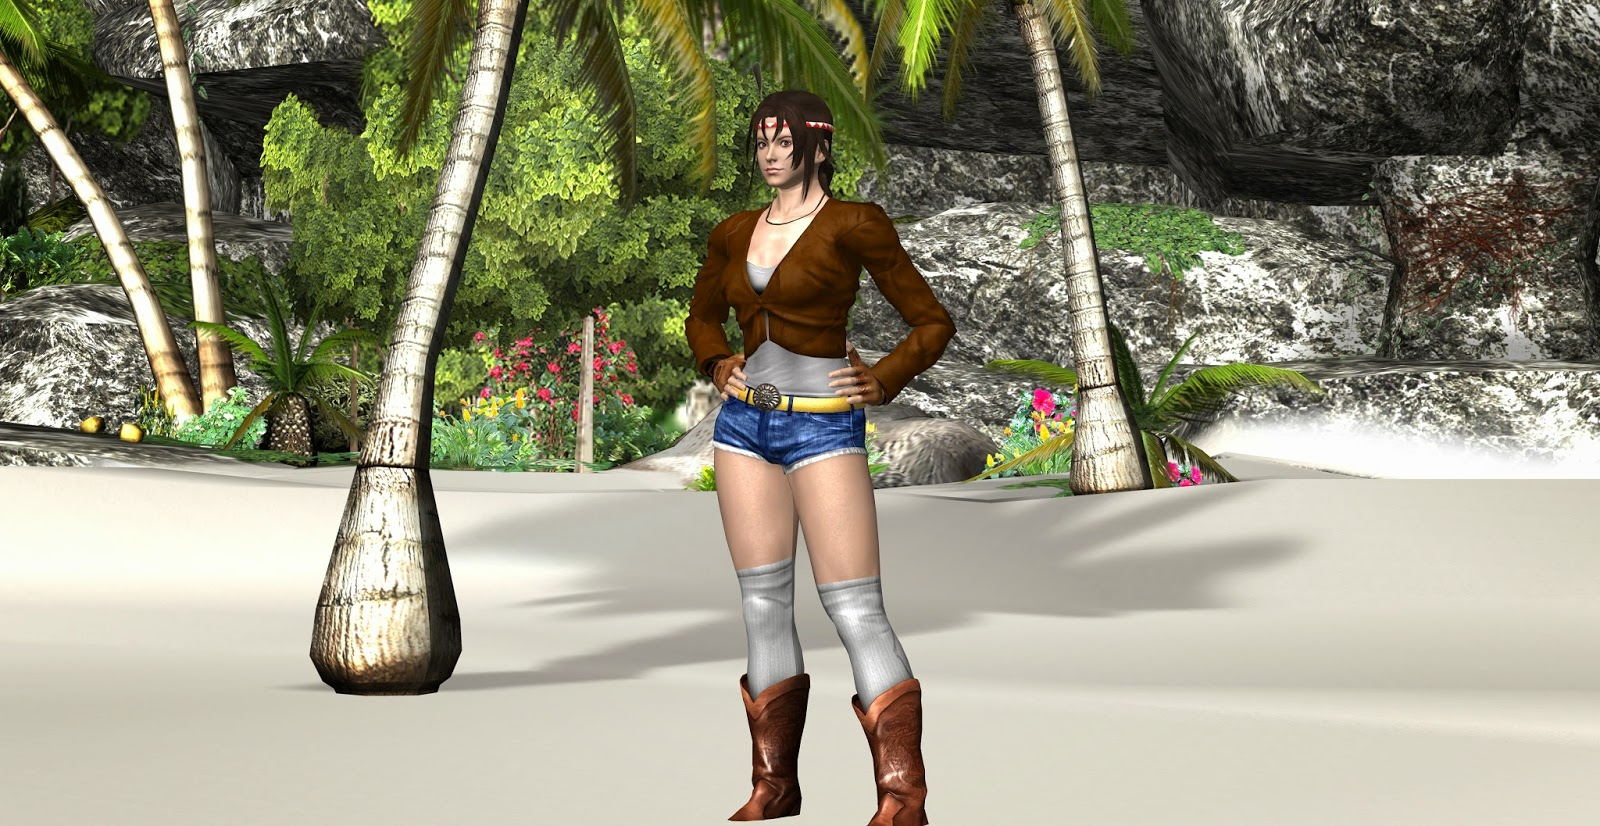 adventures in xna posing: adventures in xna posing entry 95: post